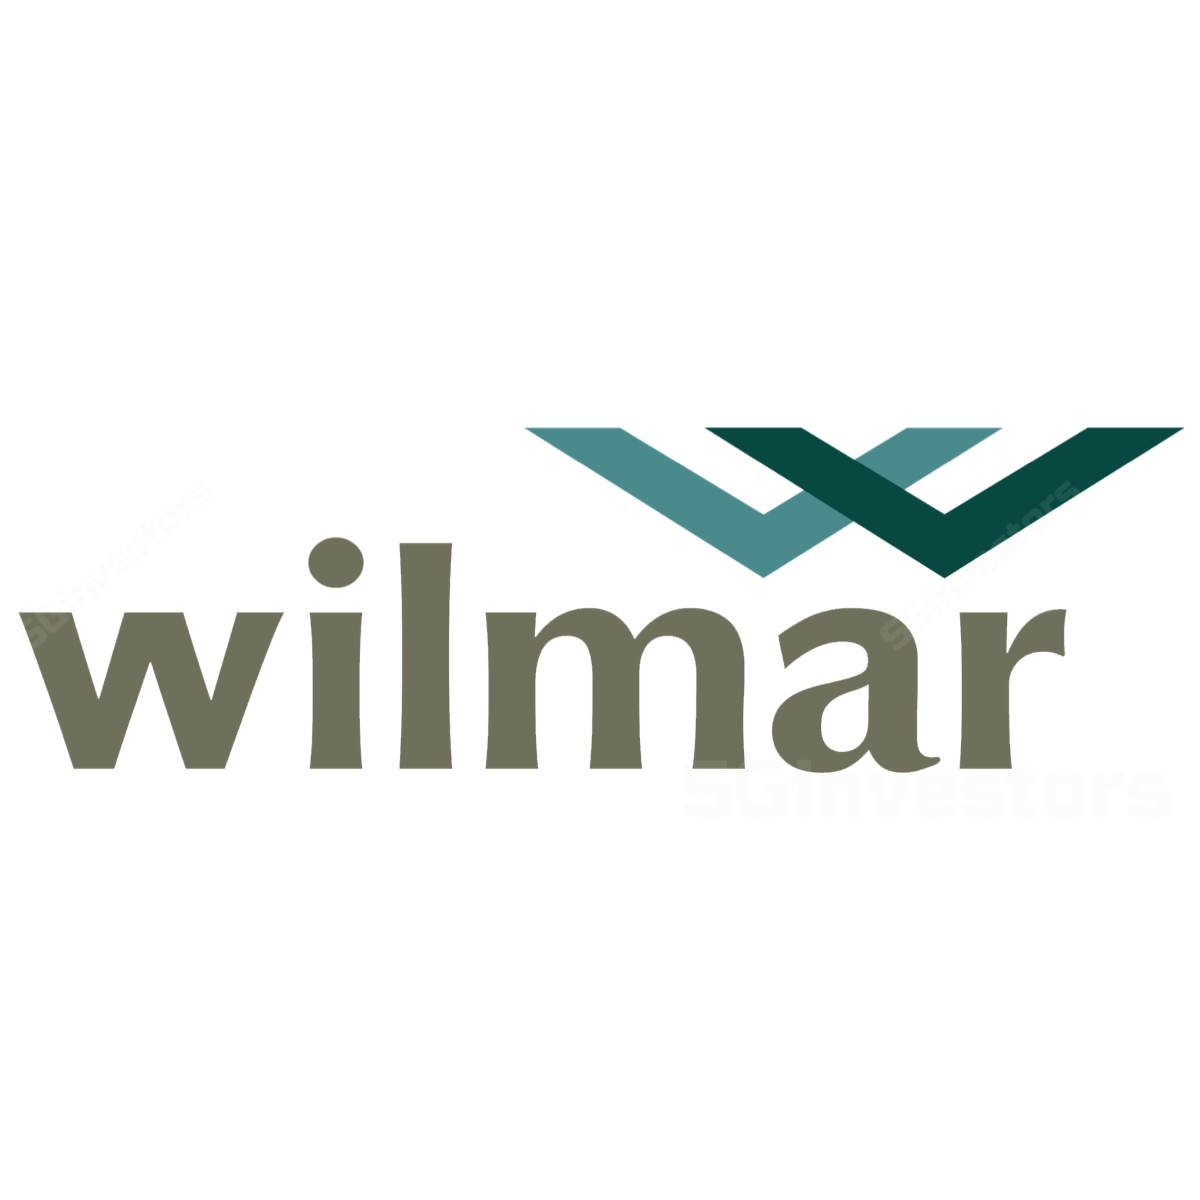 Wilmar International (WIL SP) - UOB Kay Hian 2017-06-14: Good Opportunity To Accumulate